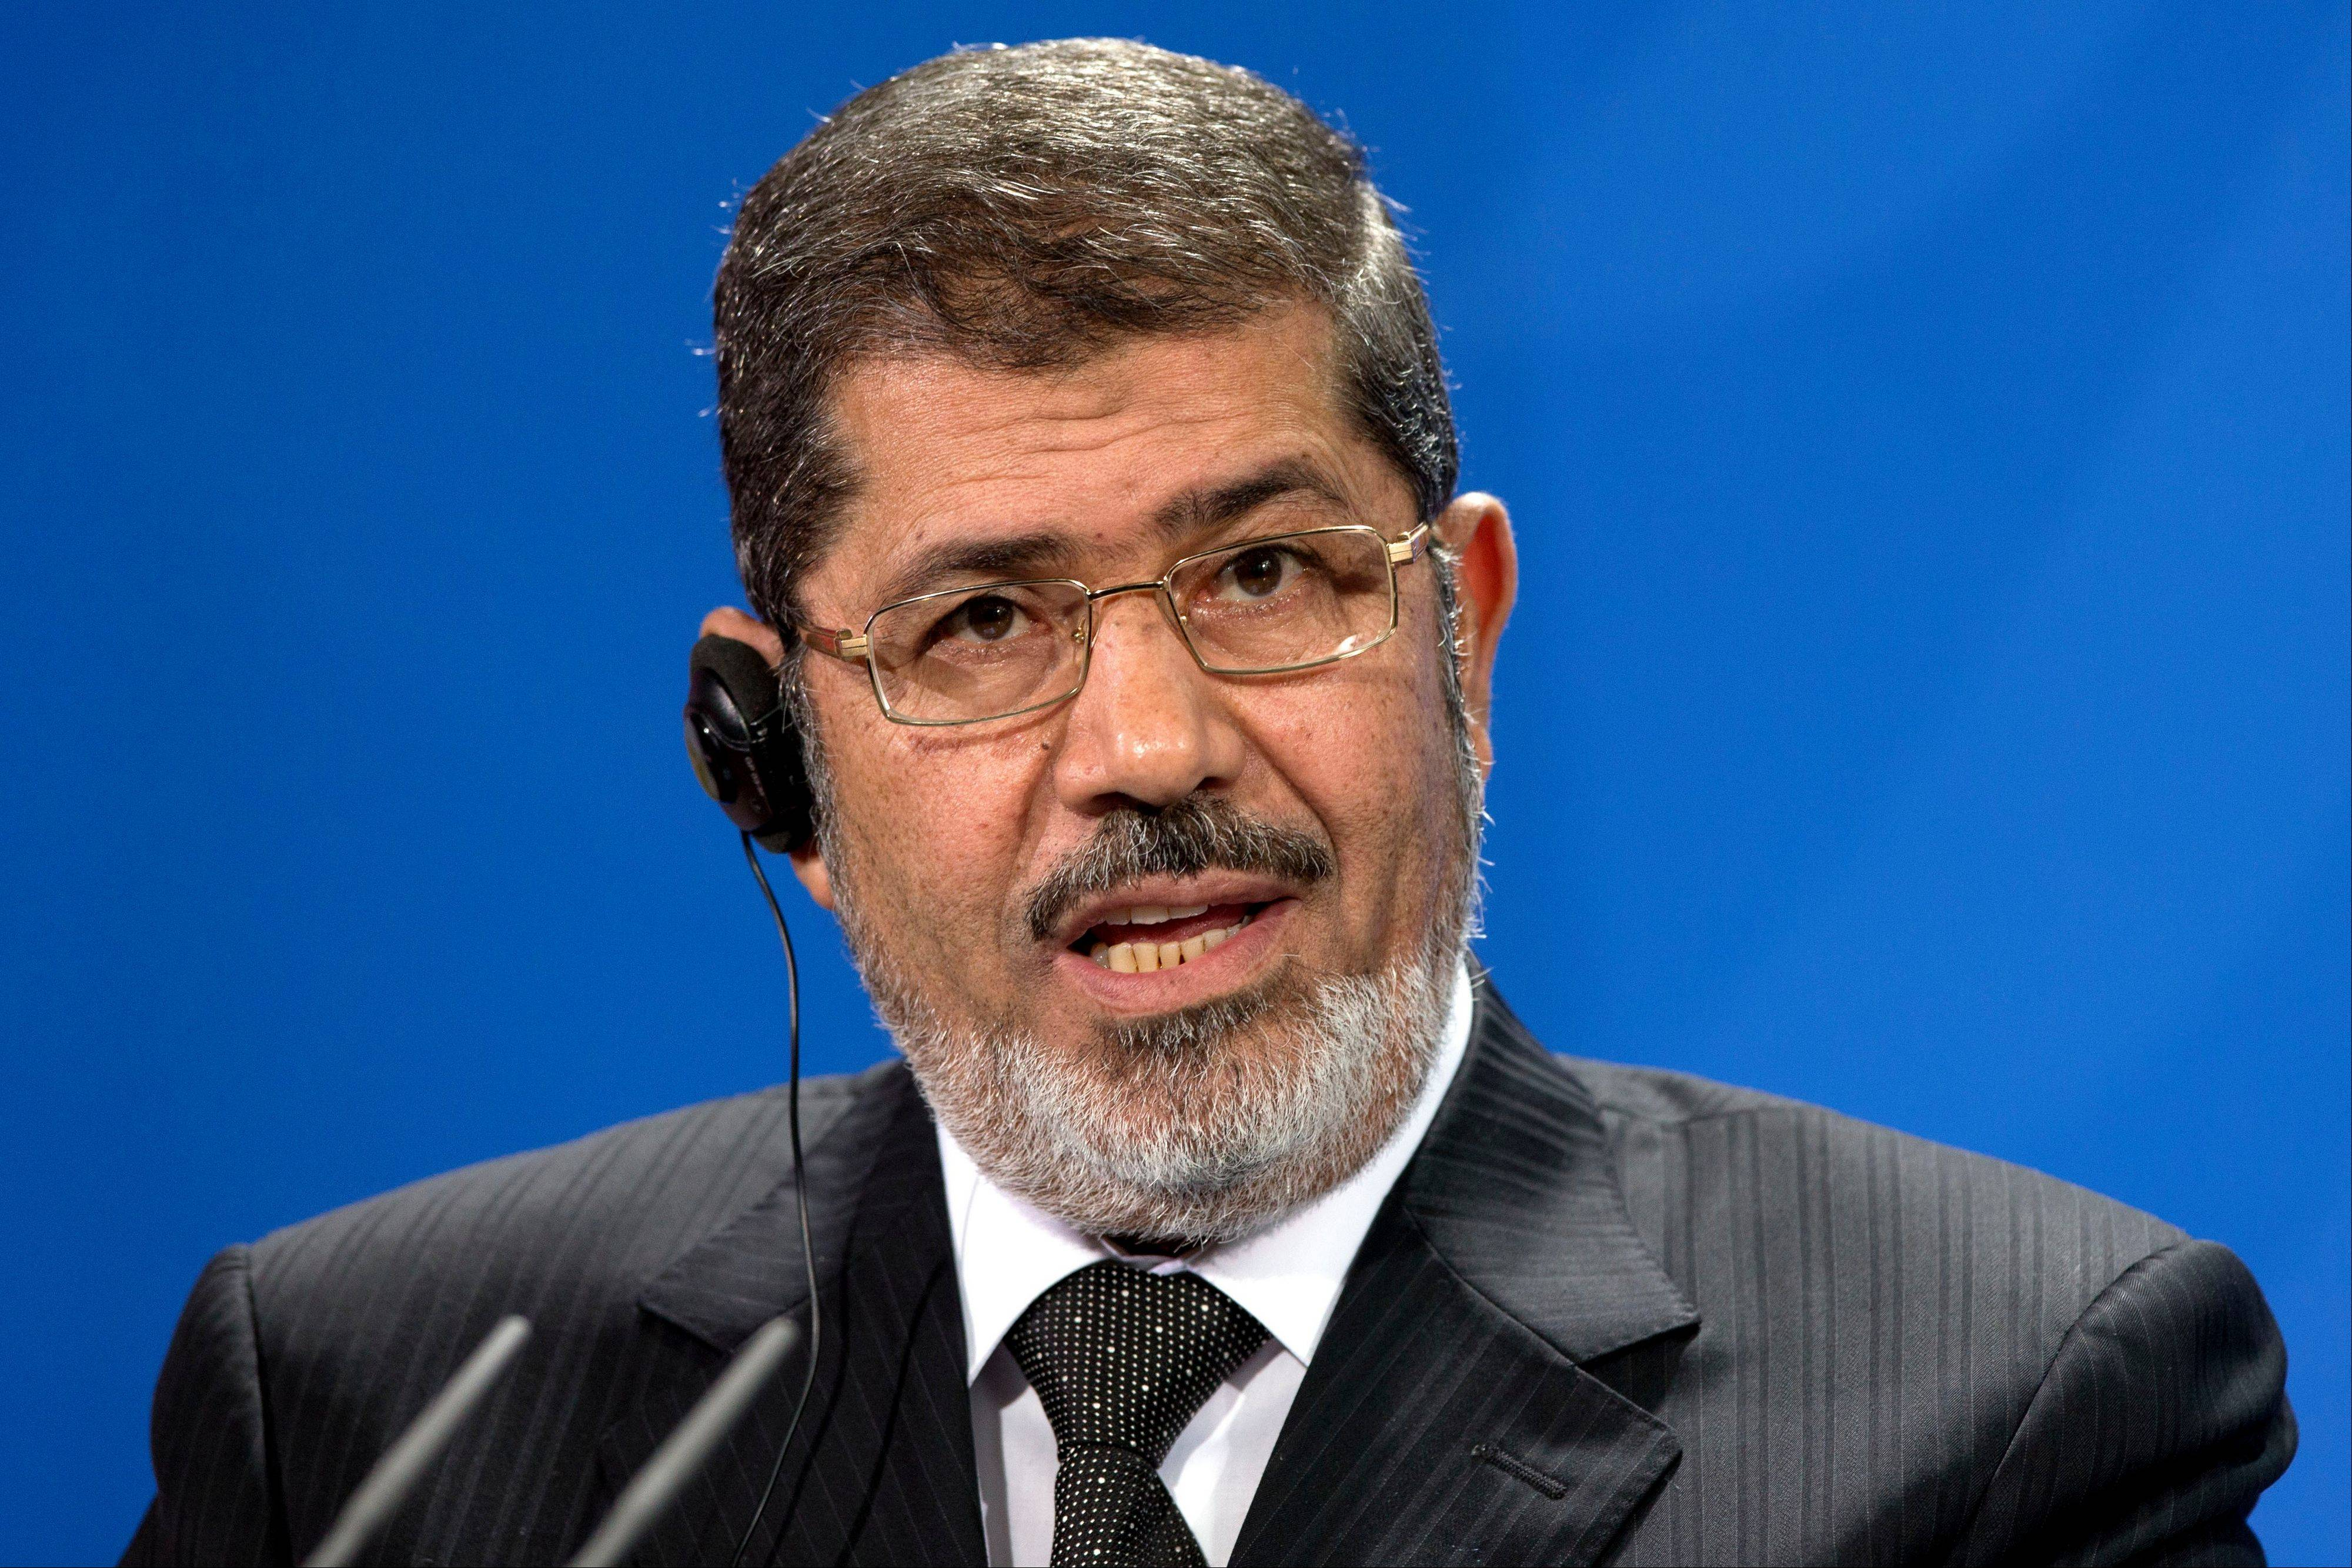 President of Egypt Mohammed Morsi, addresses the media during a joint news conference with German Chancellor Angela Merkel, unseen, after a meeting at the chancellery in Berlin, Germany, Wednesday, Jan. 30, 2013.